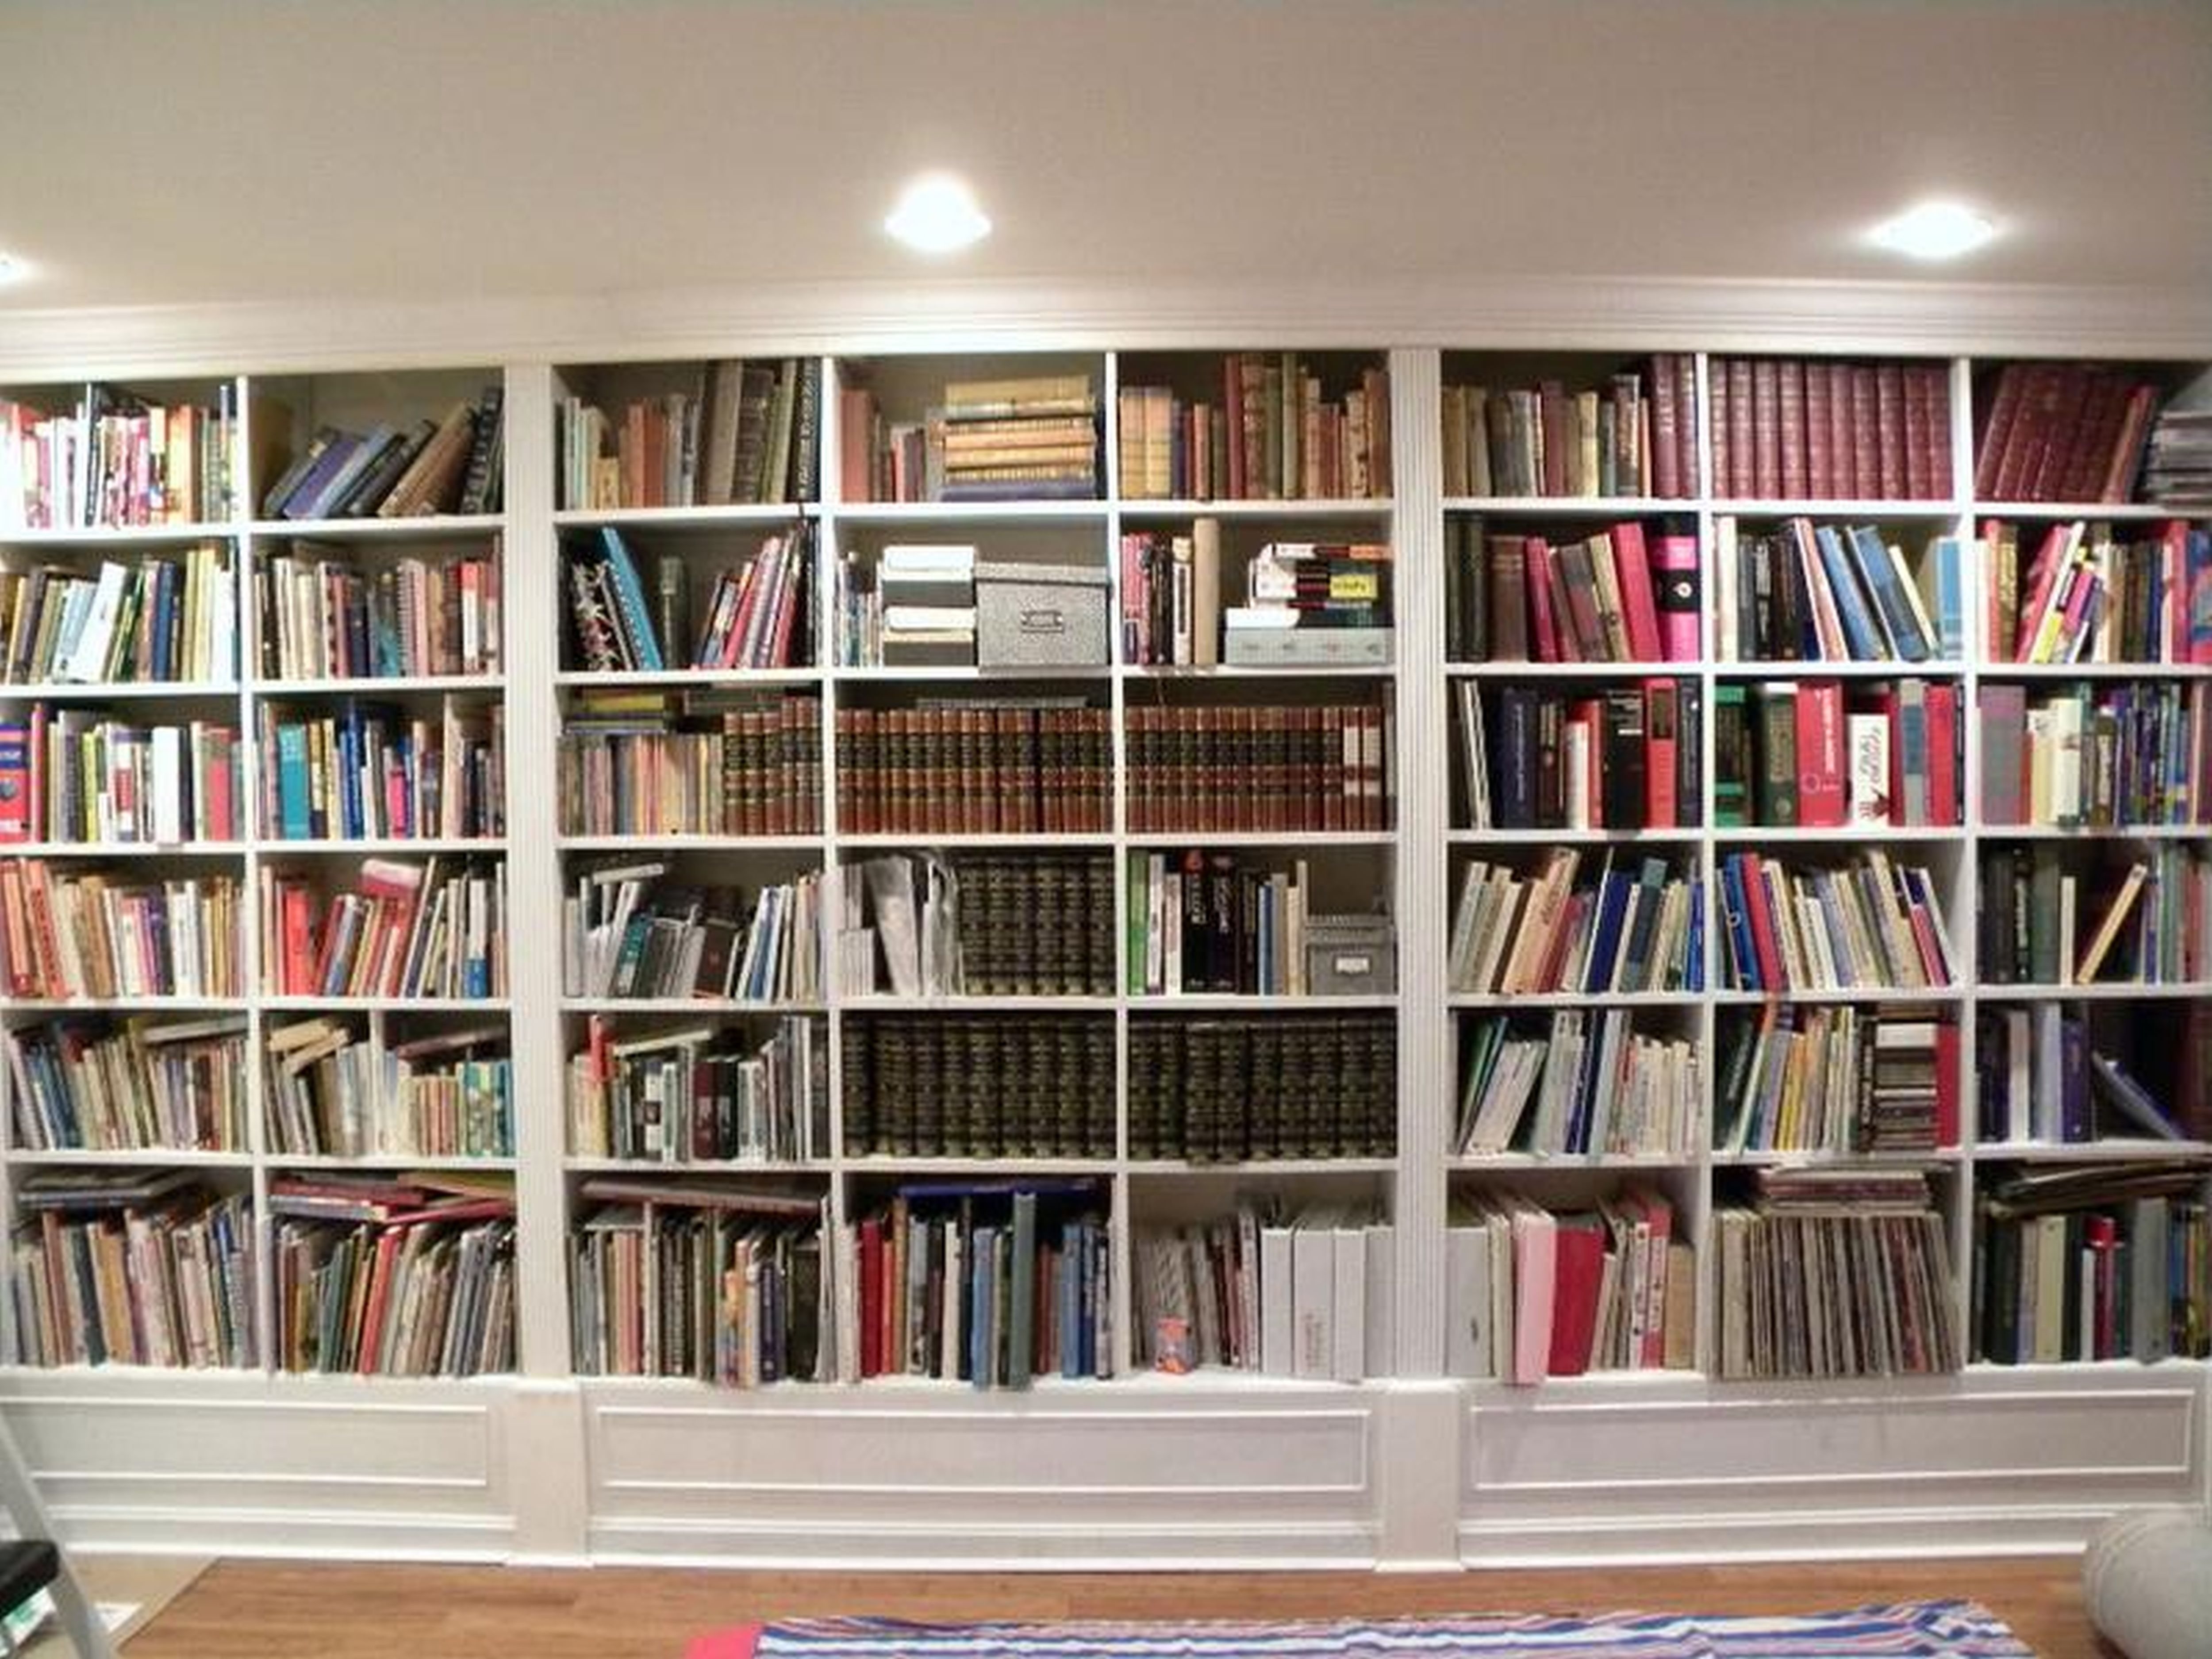 17 Best Images About Bookshelves On Pinterest Intended For Full Wall Bookcases (#1 of 15)